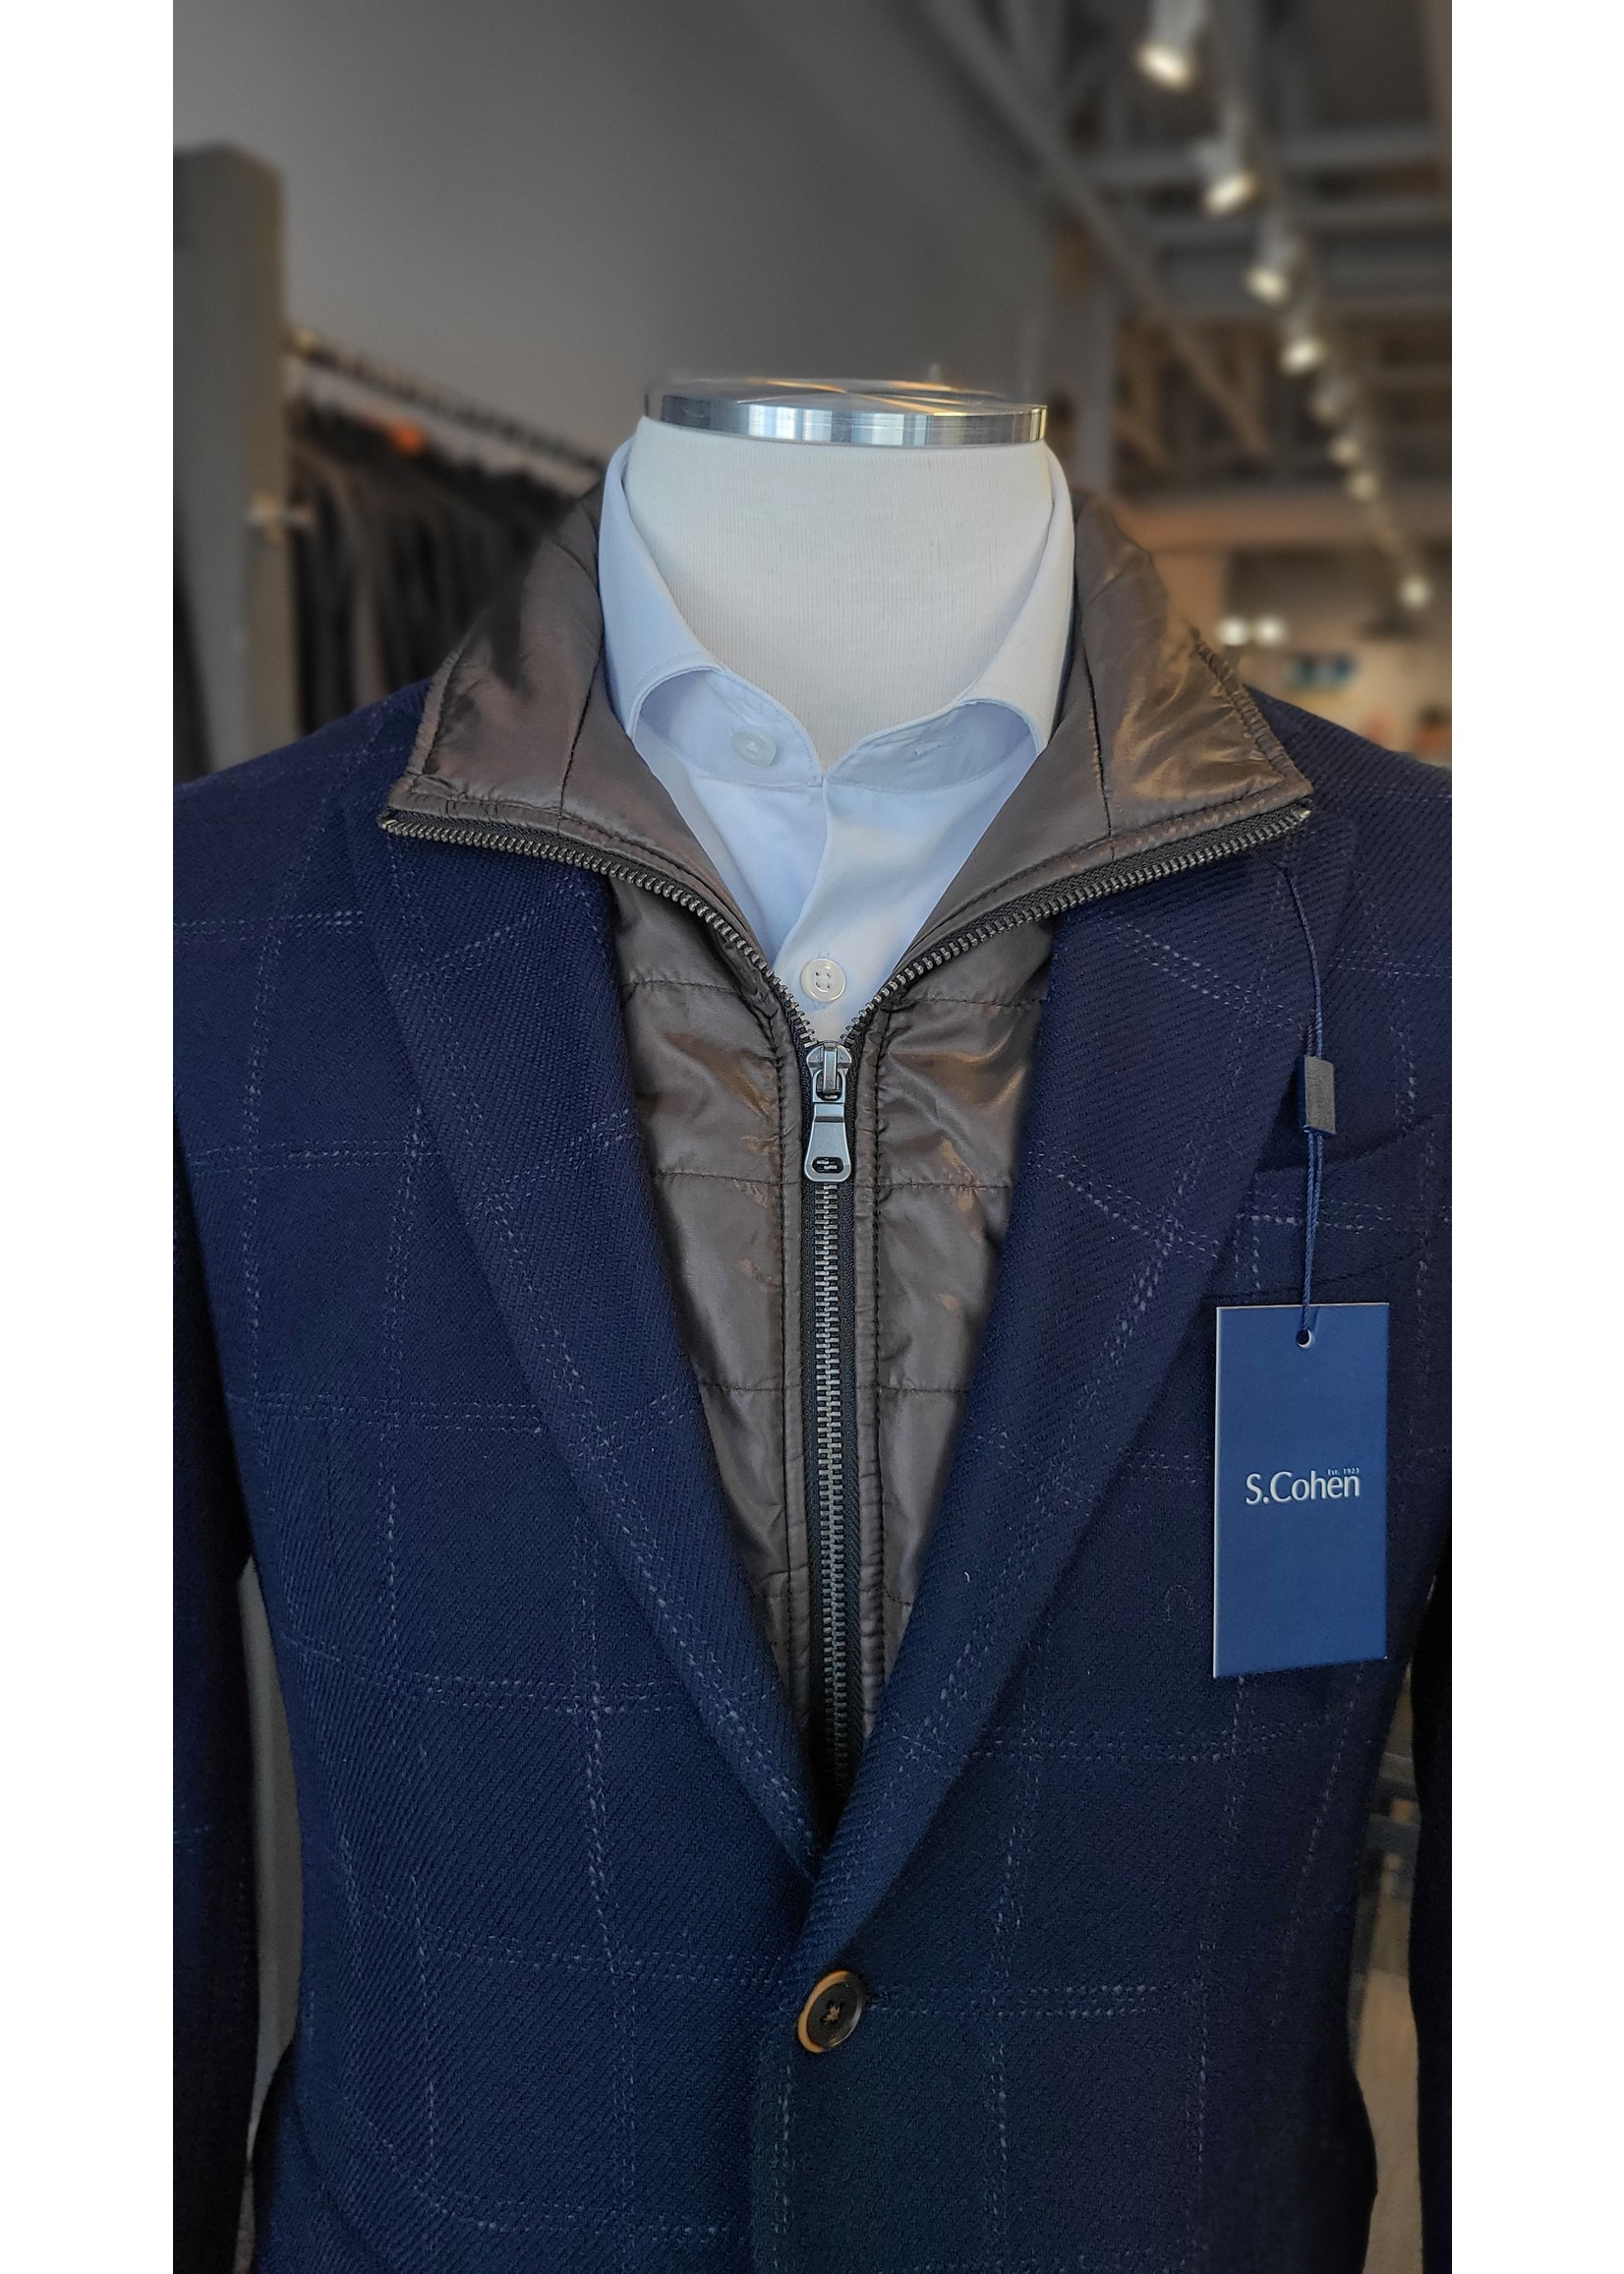 S.Cohen Eastwood Ji7122 Sport Jacket from S.Cohen